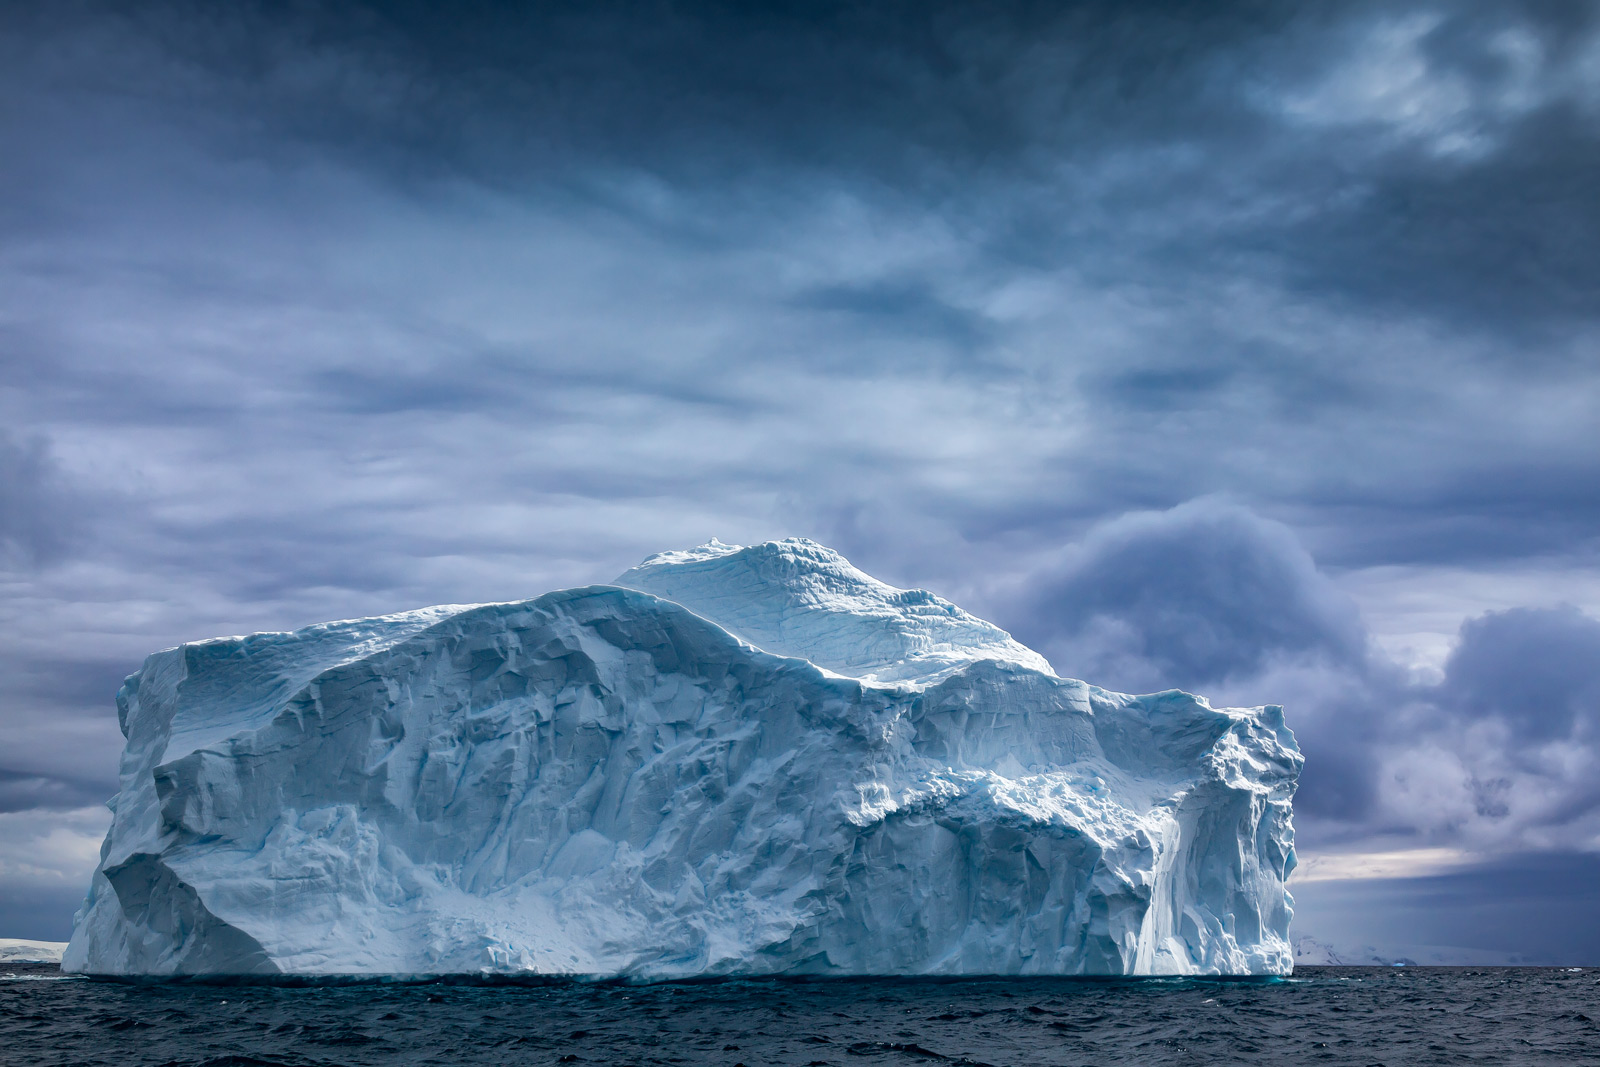 A Limited Edition, Fine Art photograph in Antarctica of a dramatic scene of a massive iceberg set against dark skies at Cuverville...